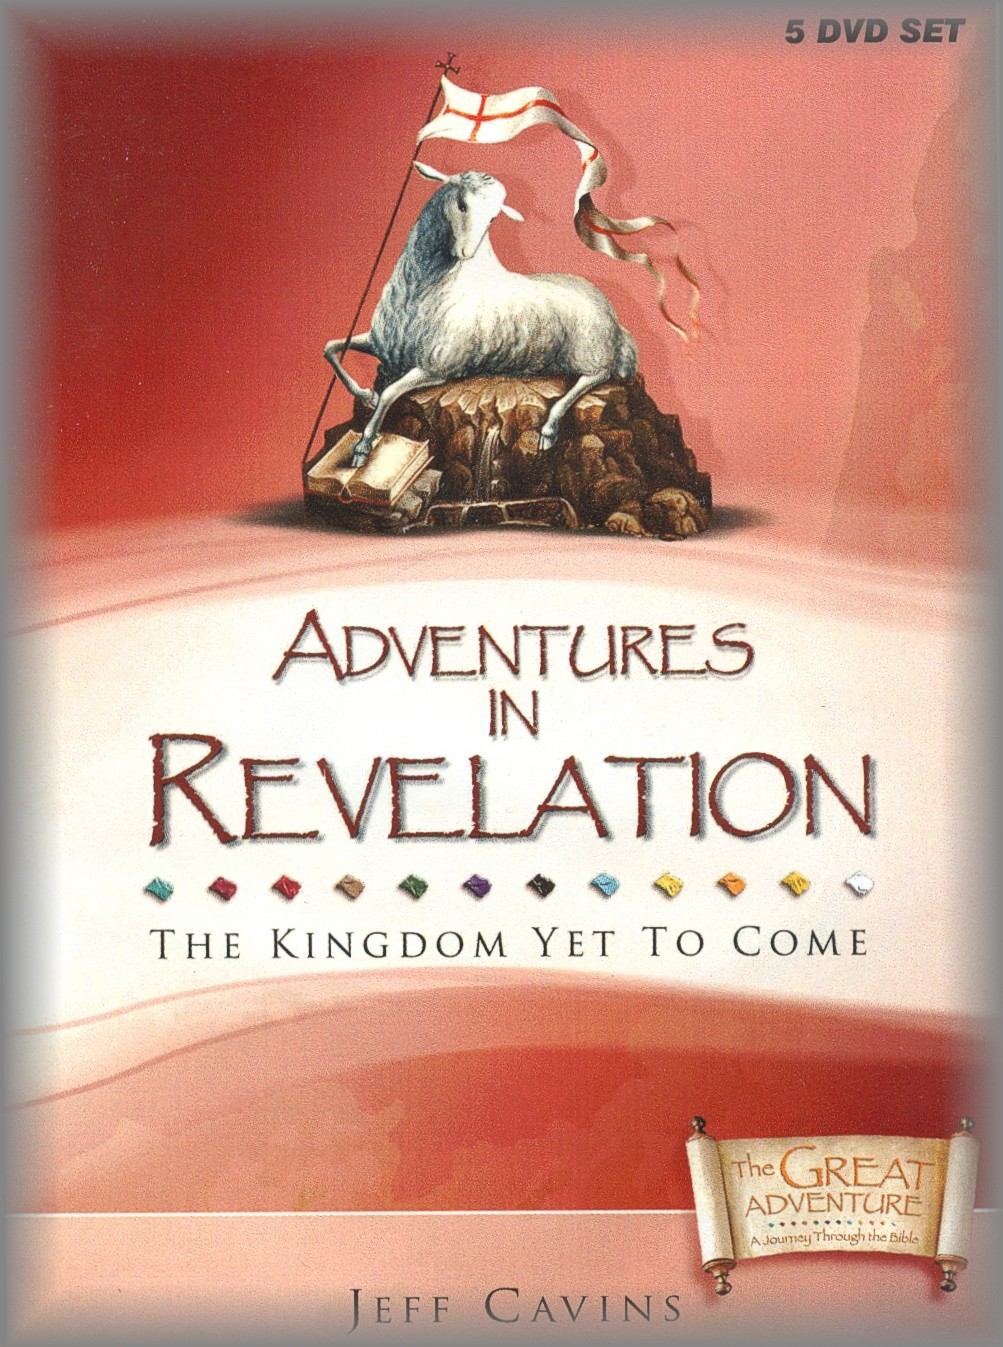 B S Guide - The Great Adventure Catholic Bible Study